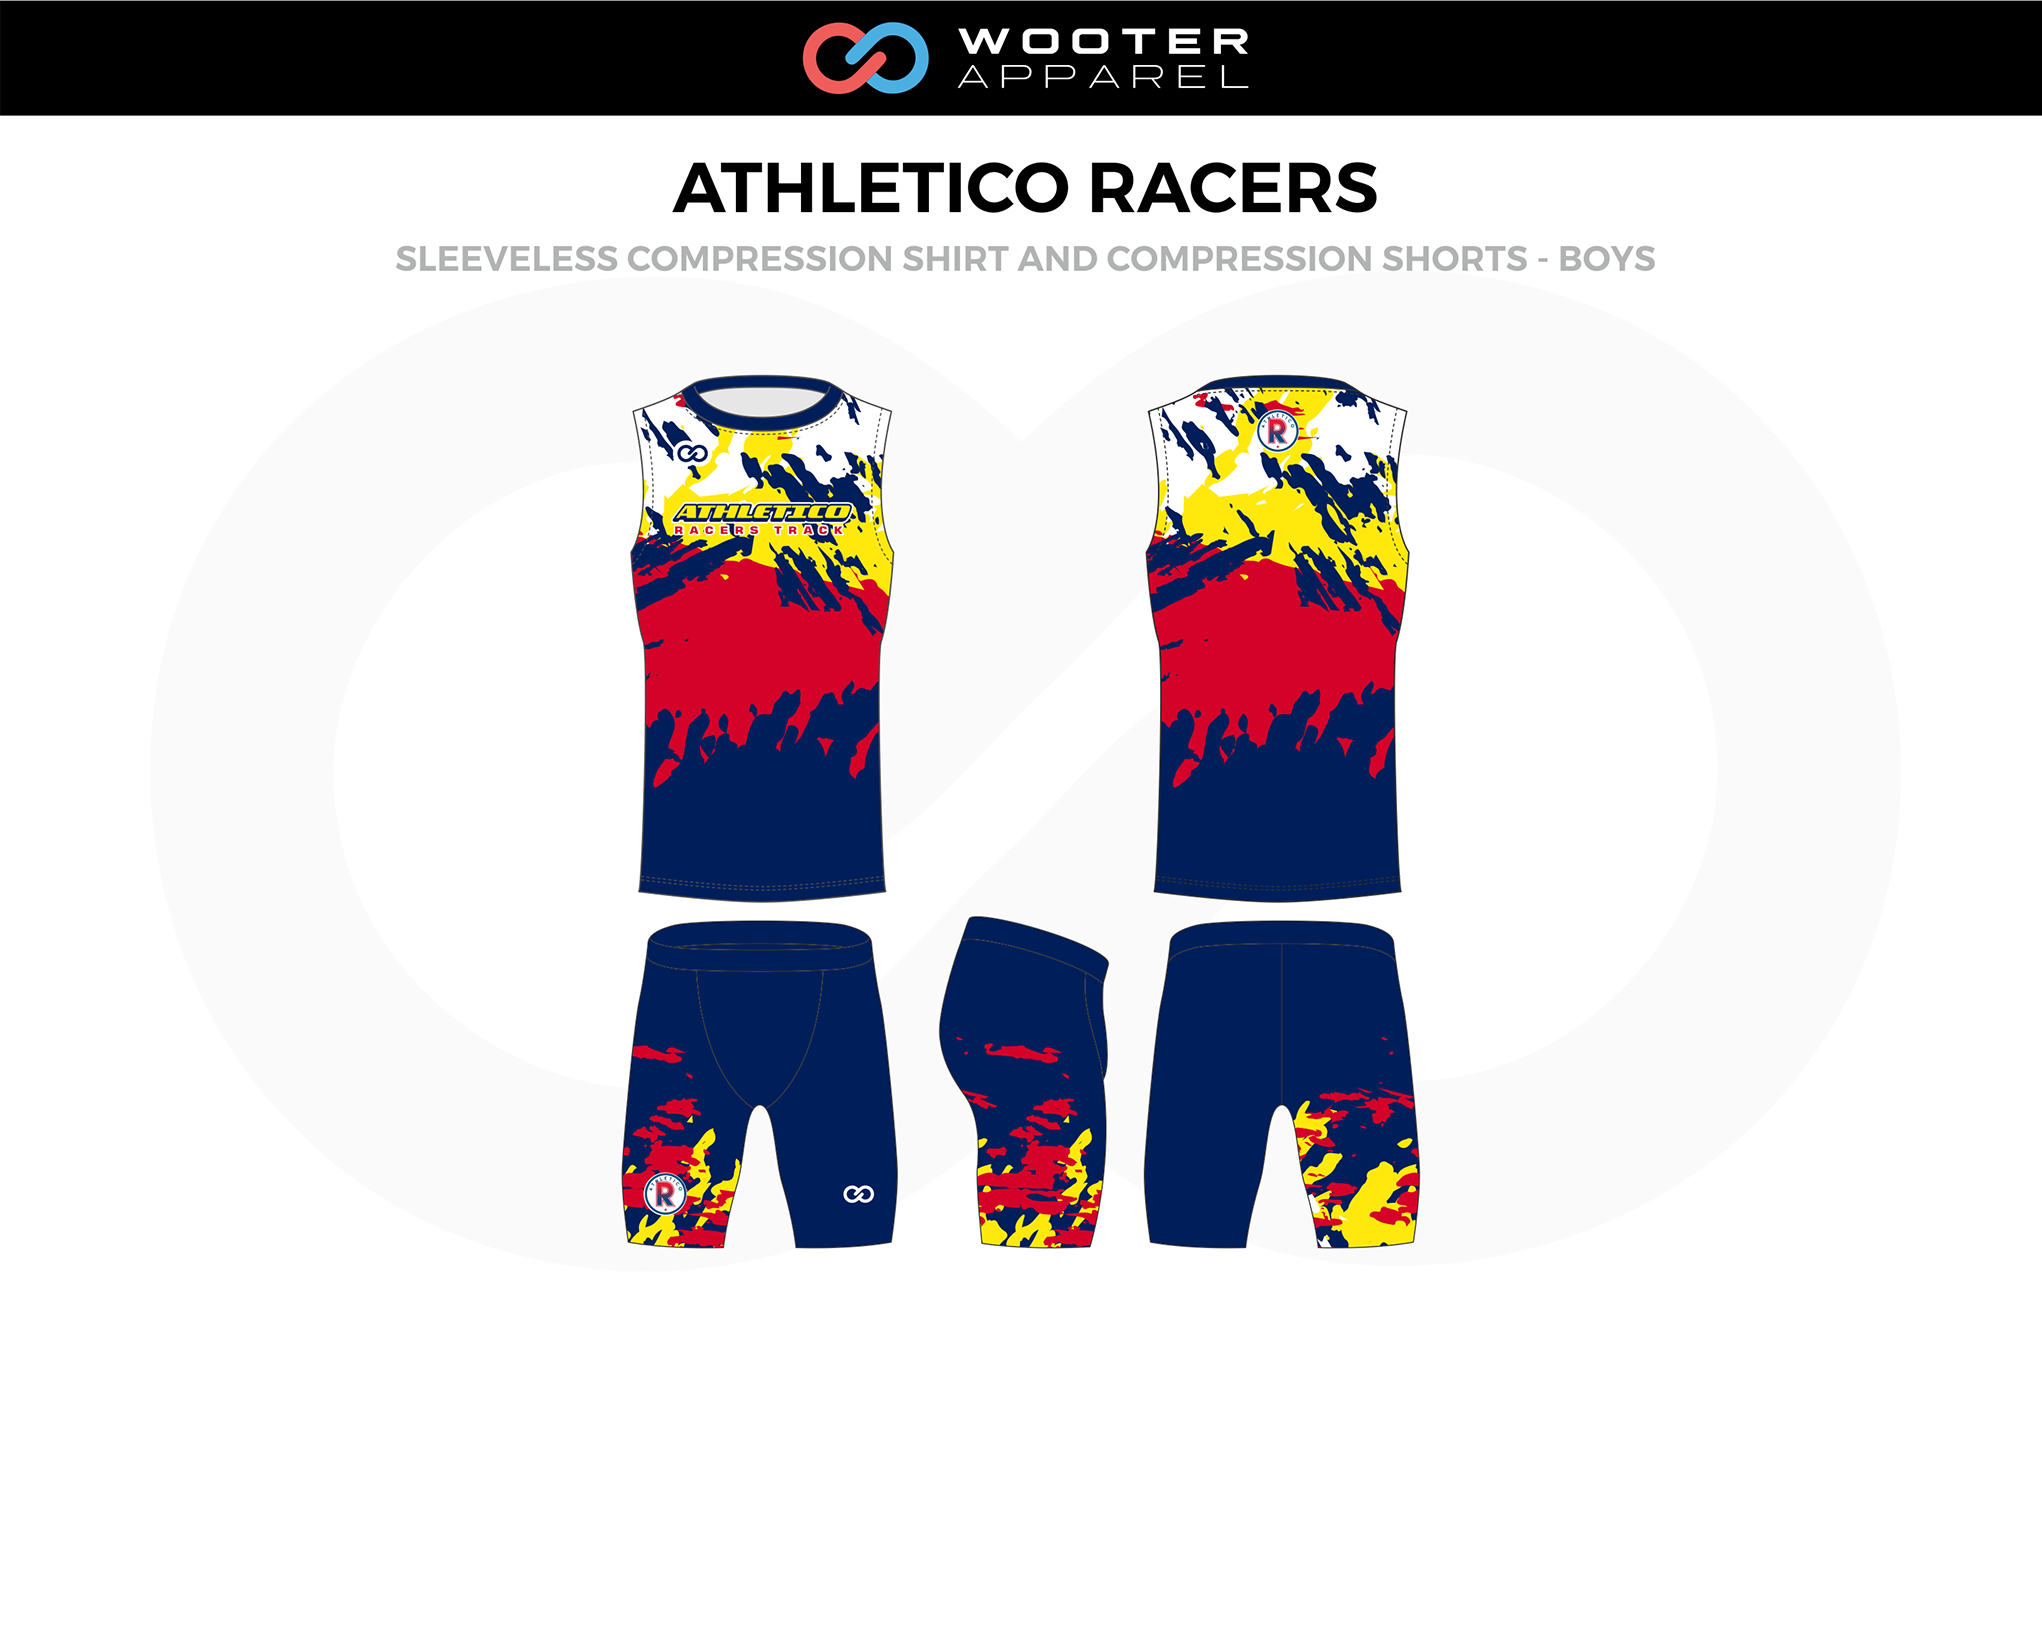 ATHLETICO RACERS Blue Red Yellow Sleeveless Compression Boy Track Uniforms, Jerseys, and Shorts